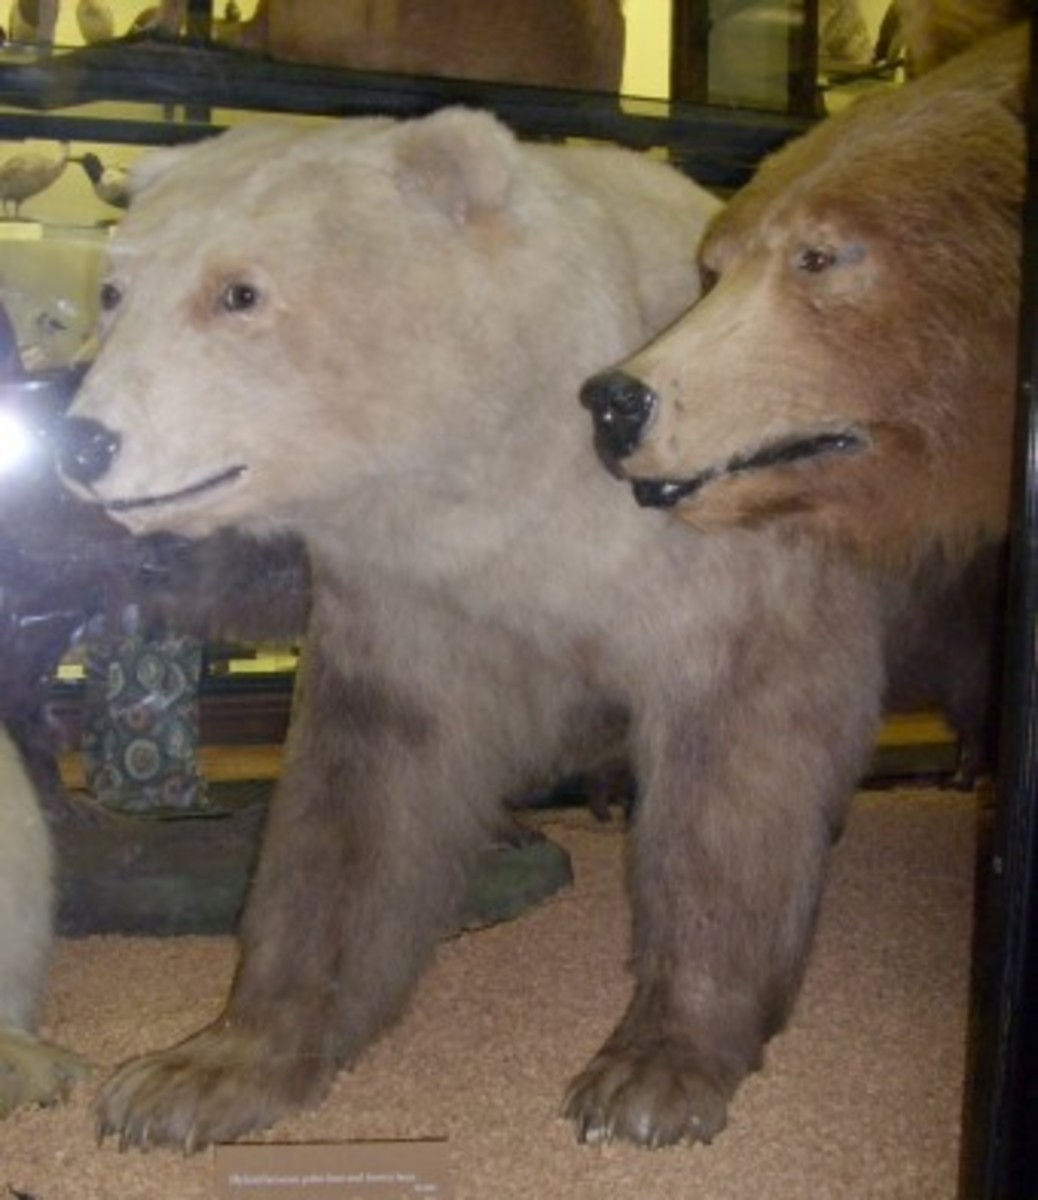 Polar/brown bear hybrid on display at the Natural History Museum at Tring in the United Kingdom.